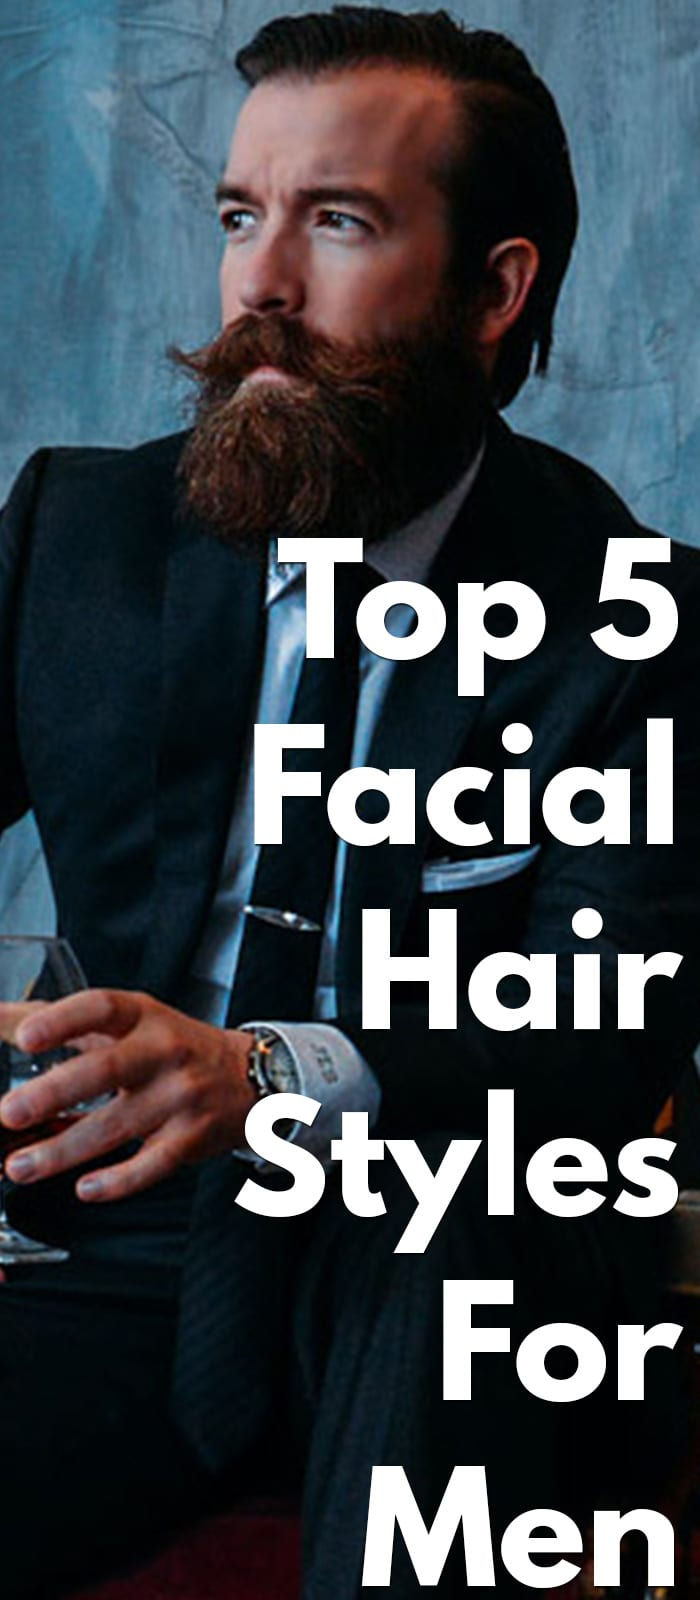 5 Amazing Facial Hair Styles - Moustache, Stubble Beard, Long Beard, Etc